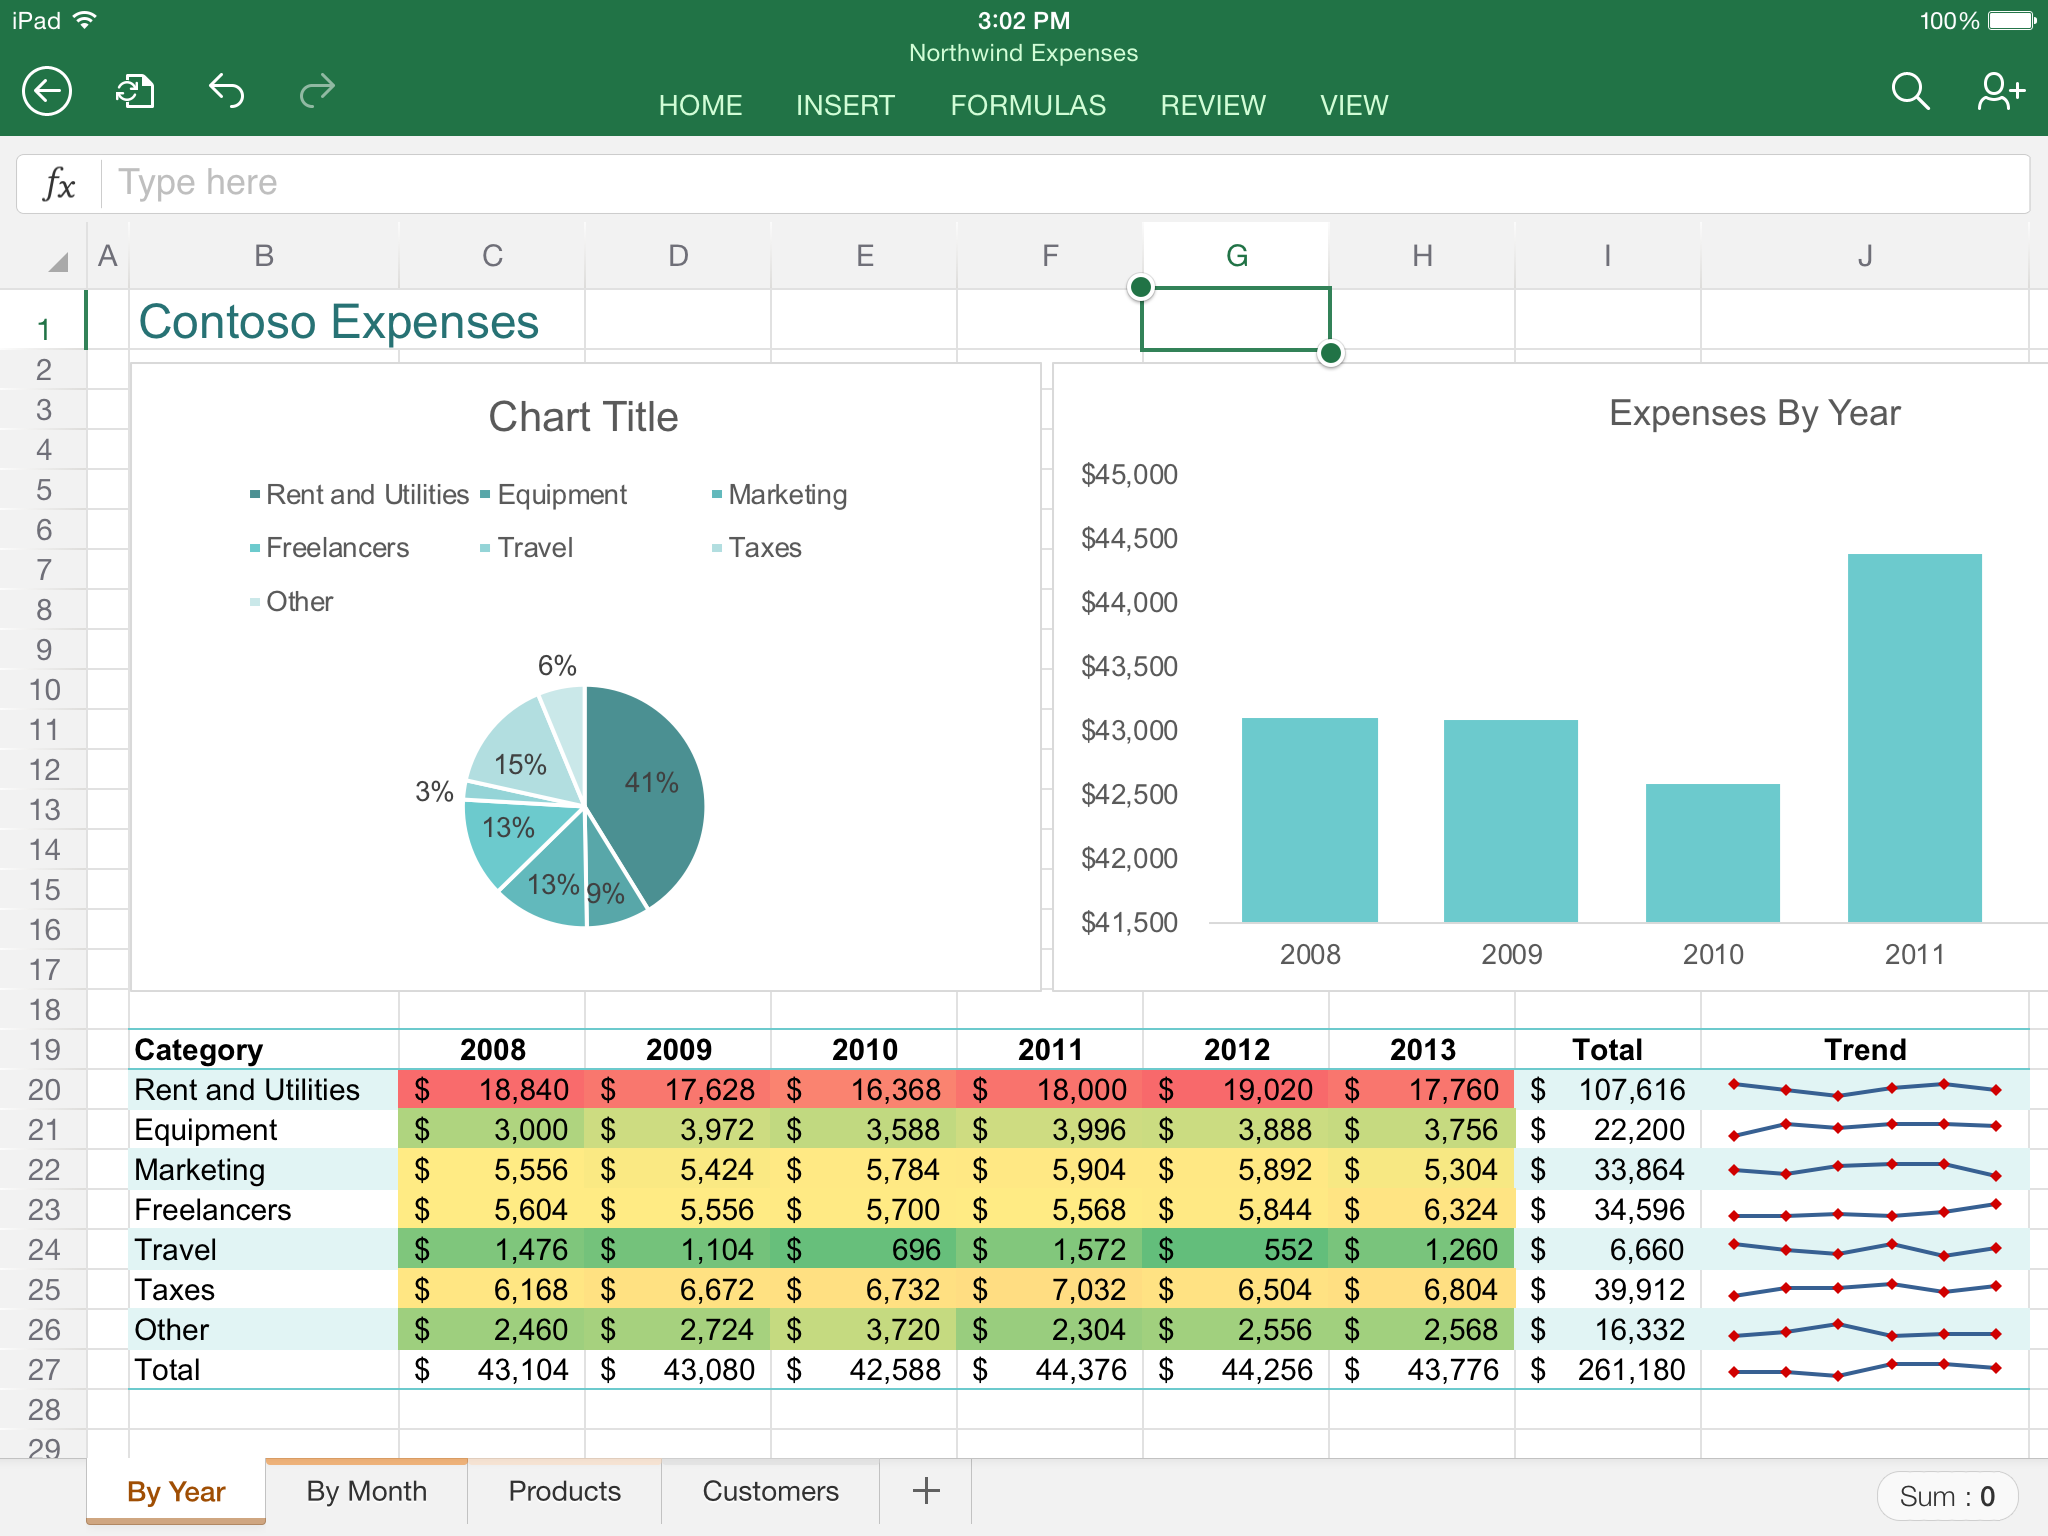 Ediblewildsus  Surprising App Highlight Excel  Mobile Digital Now With Luxury Excel In Action With Agreeable Secondary Axis Excel Also How To Deduplicate In Excel In Addition How To Rotate Cells In Excel And Top Excel Functions As Well As Excel Contractors Additionally How To Remove A Hyperlink In Excel From Youstonybrookedu With Ediblewildsus  Luxury App Highlight Excel  Mobile Digital Now With Agreeable Excel In Action And Surprising Secondary Axis Excel Also How To Deduplicate In Excel In Addition How To Rotate Cells In Excel From Youstonybrookedu